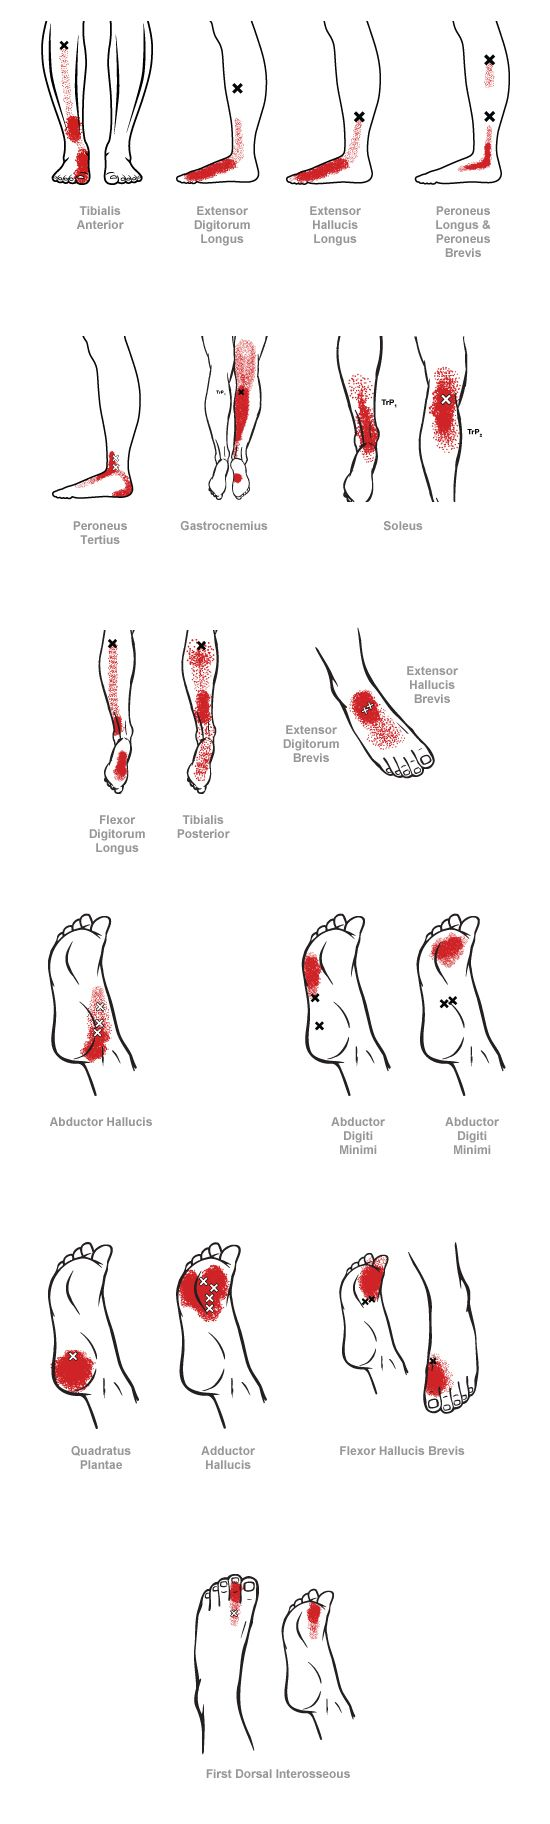 92 best Plantar Fasciitis, Heel Spurs & Foot Pain images on ...